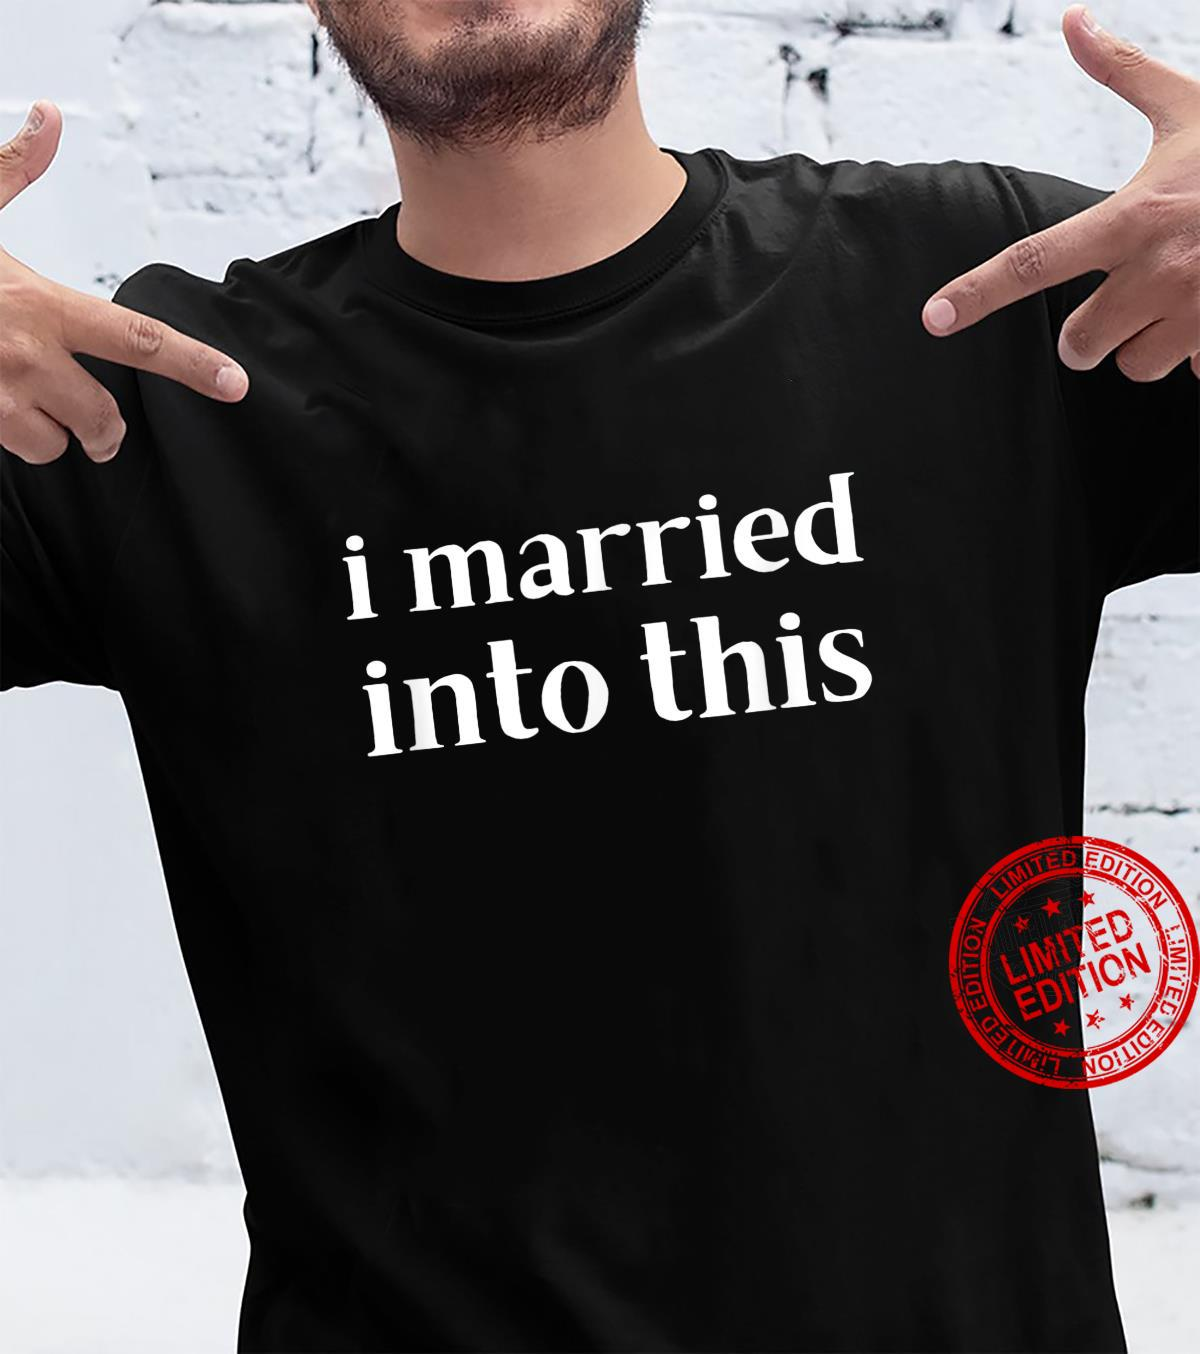 I married into this InLaw SoninLaw Daughter Shirt